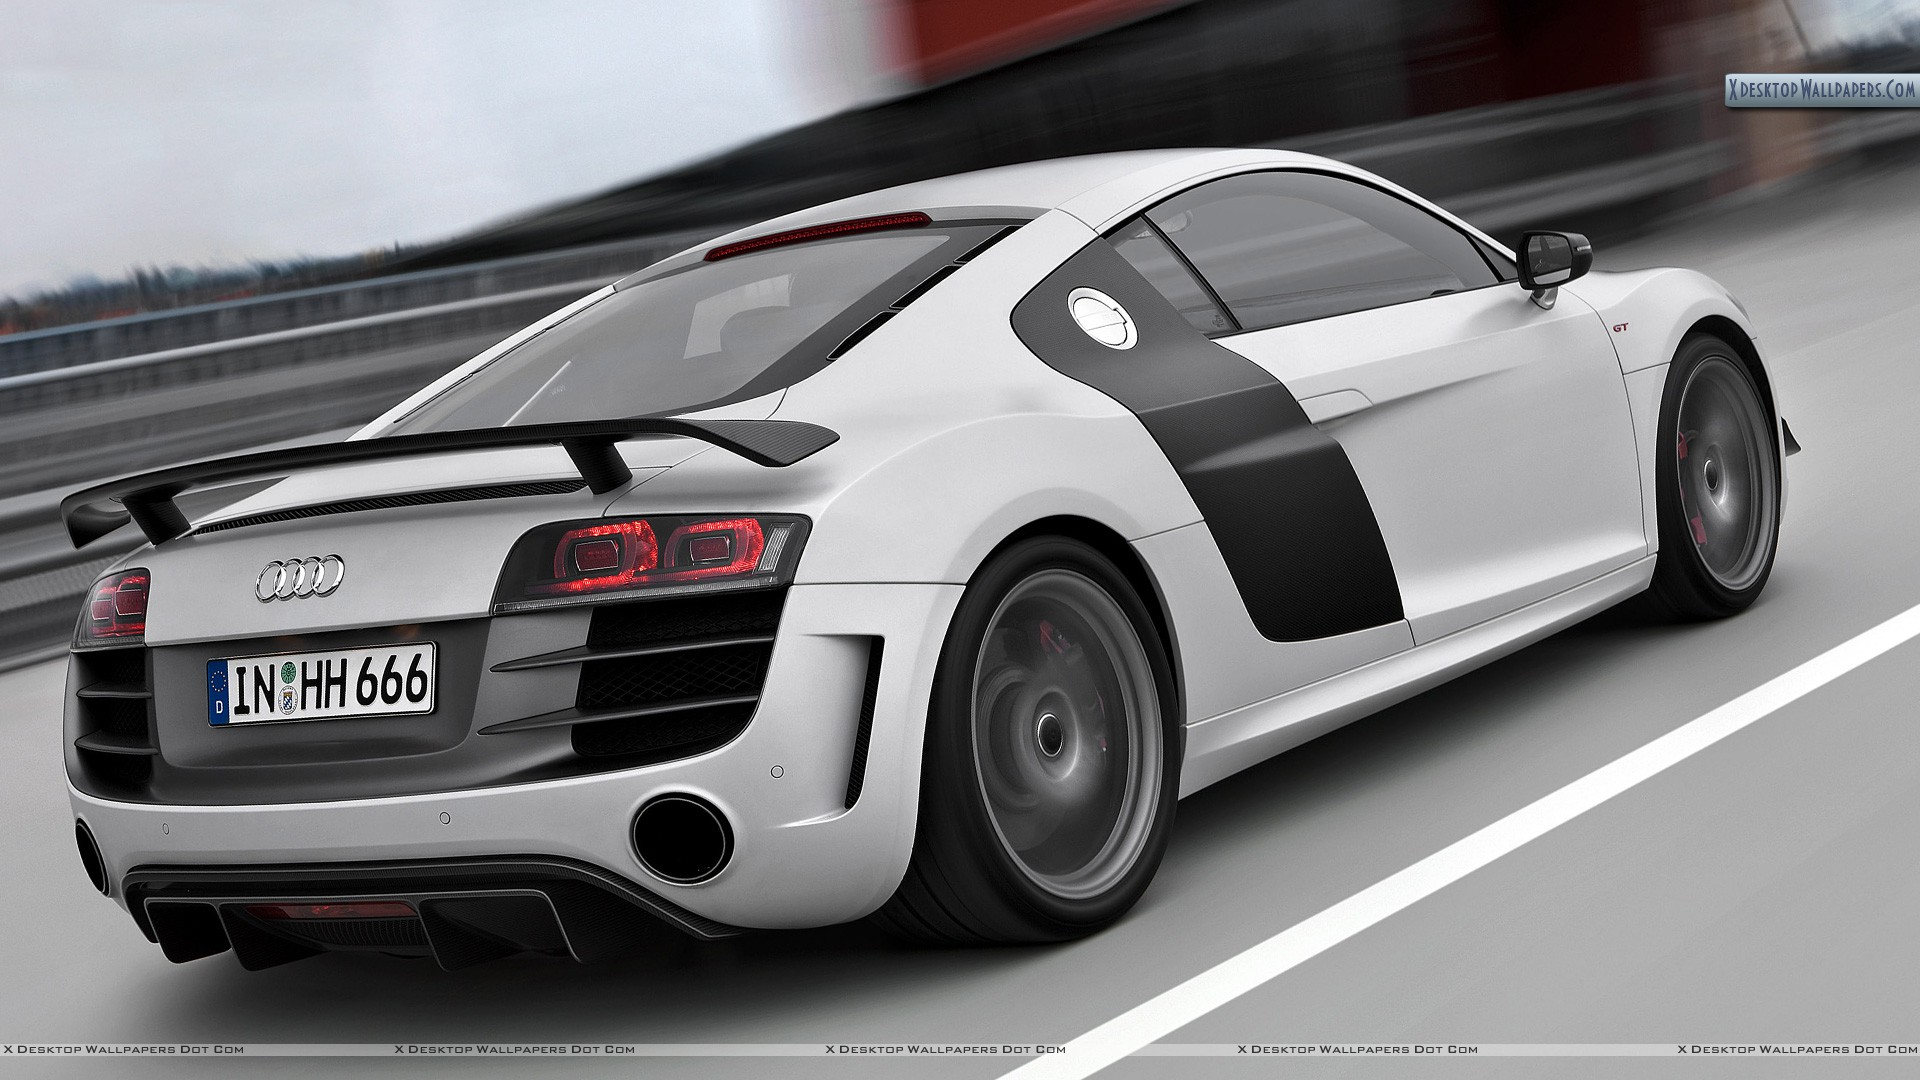 audi r8 wallpapers, photos & images in hd